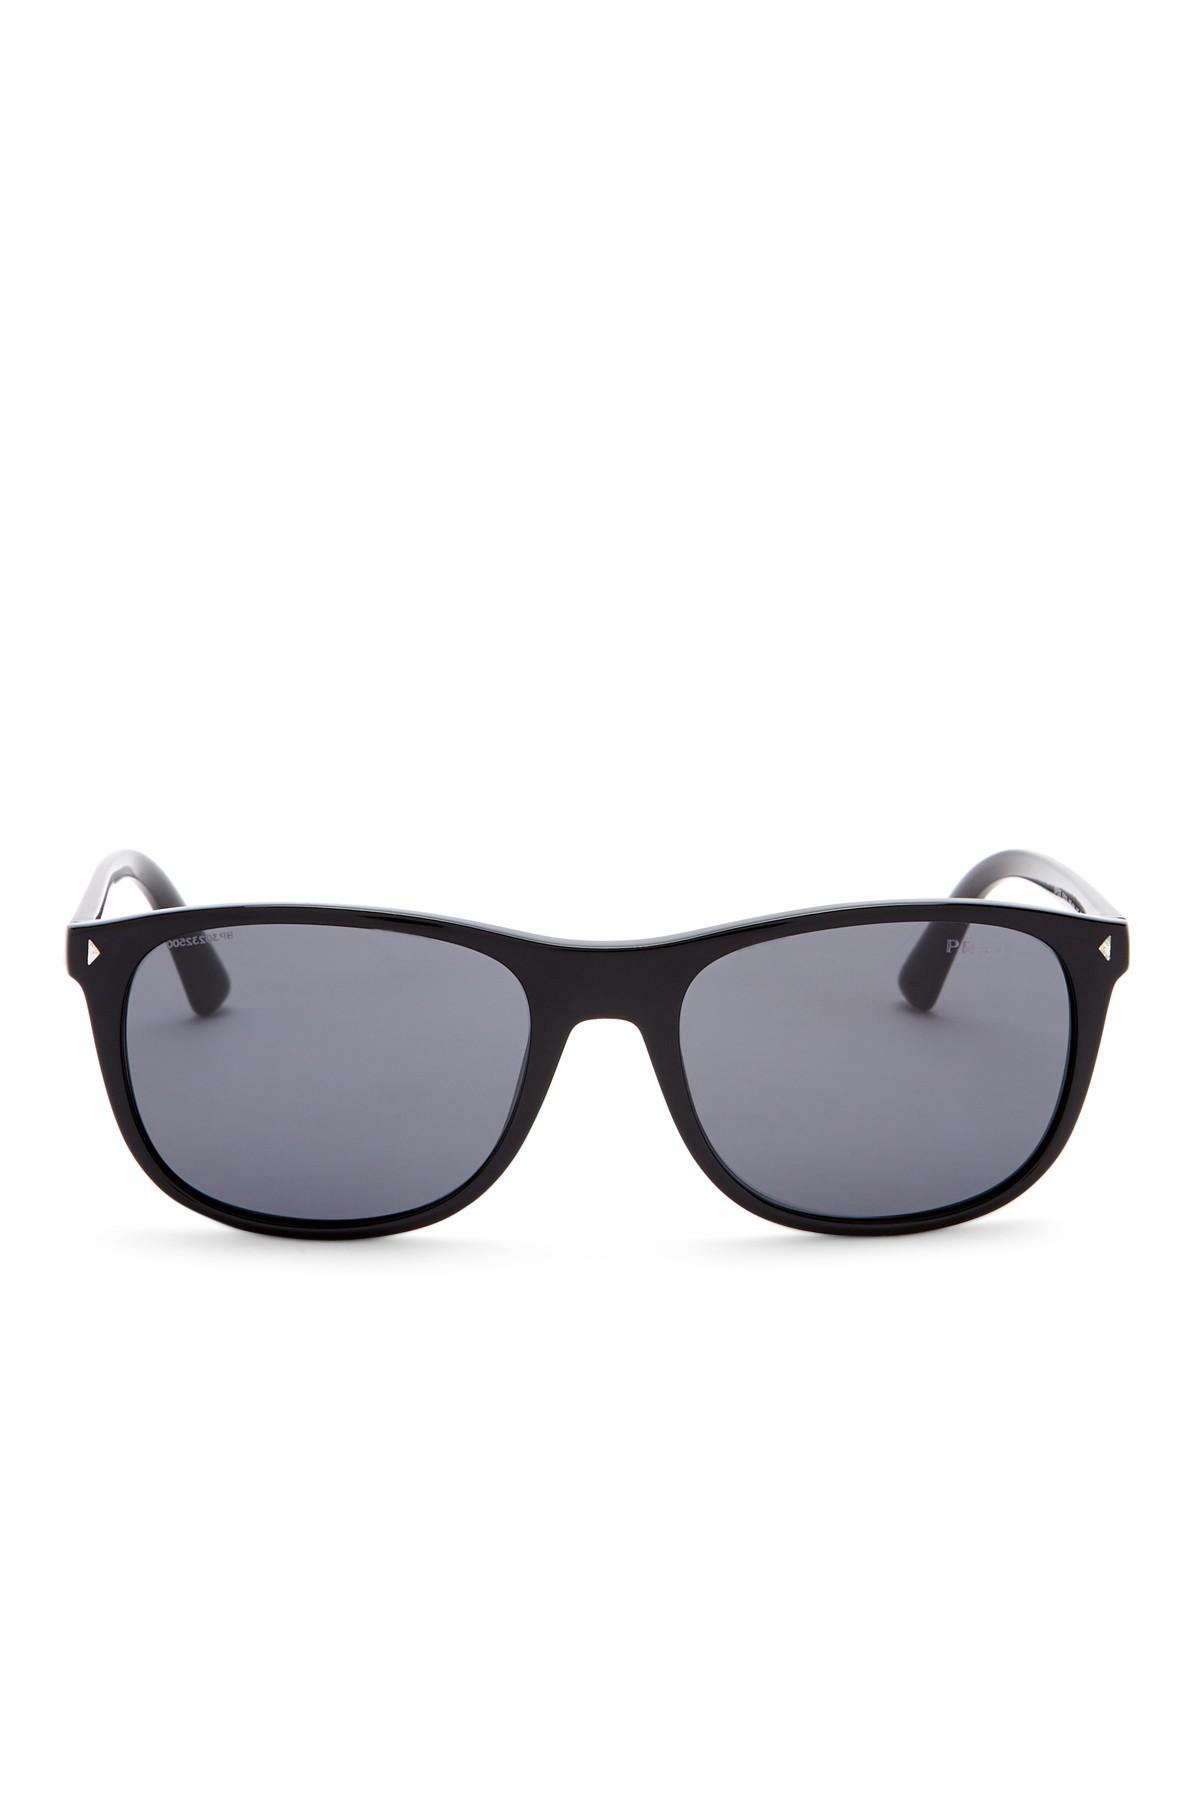 d904b705bb Lyst - Prada 57mm Rectangle Sunglasses in Black for Men